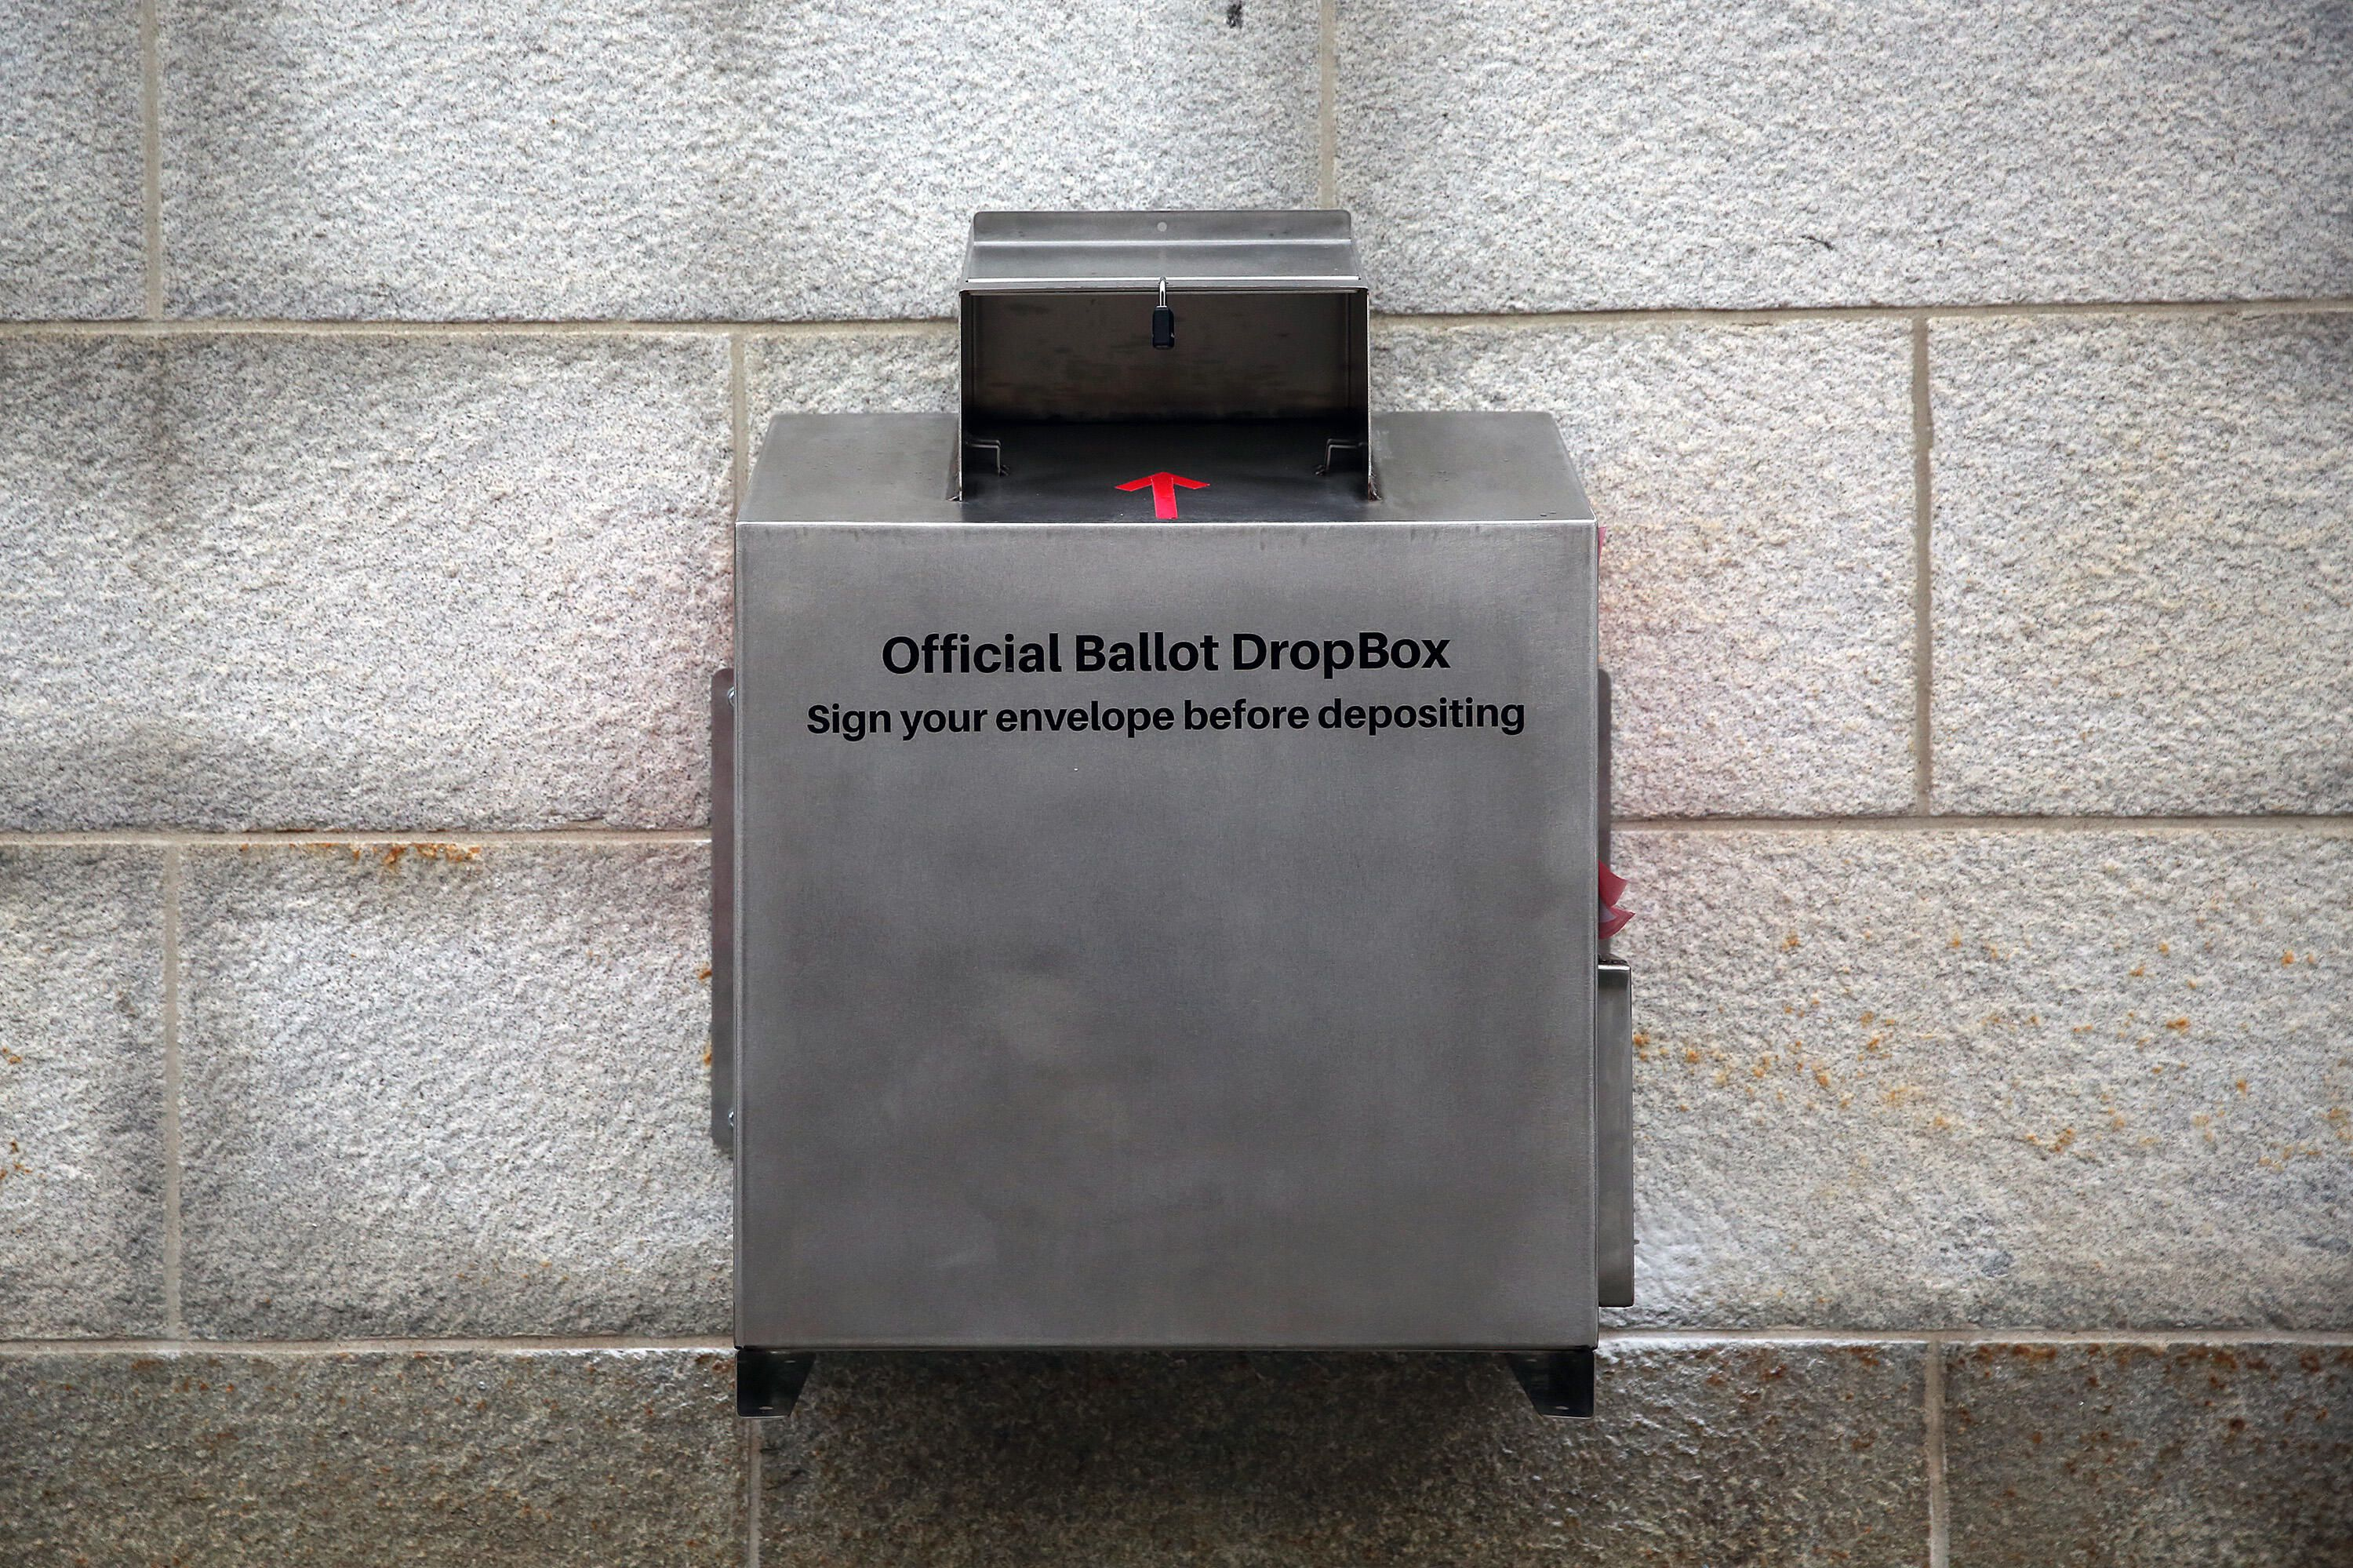 A ballot drop box with a sign that says